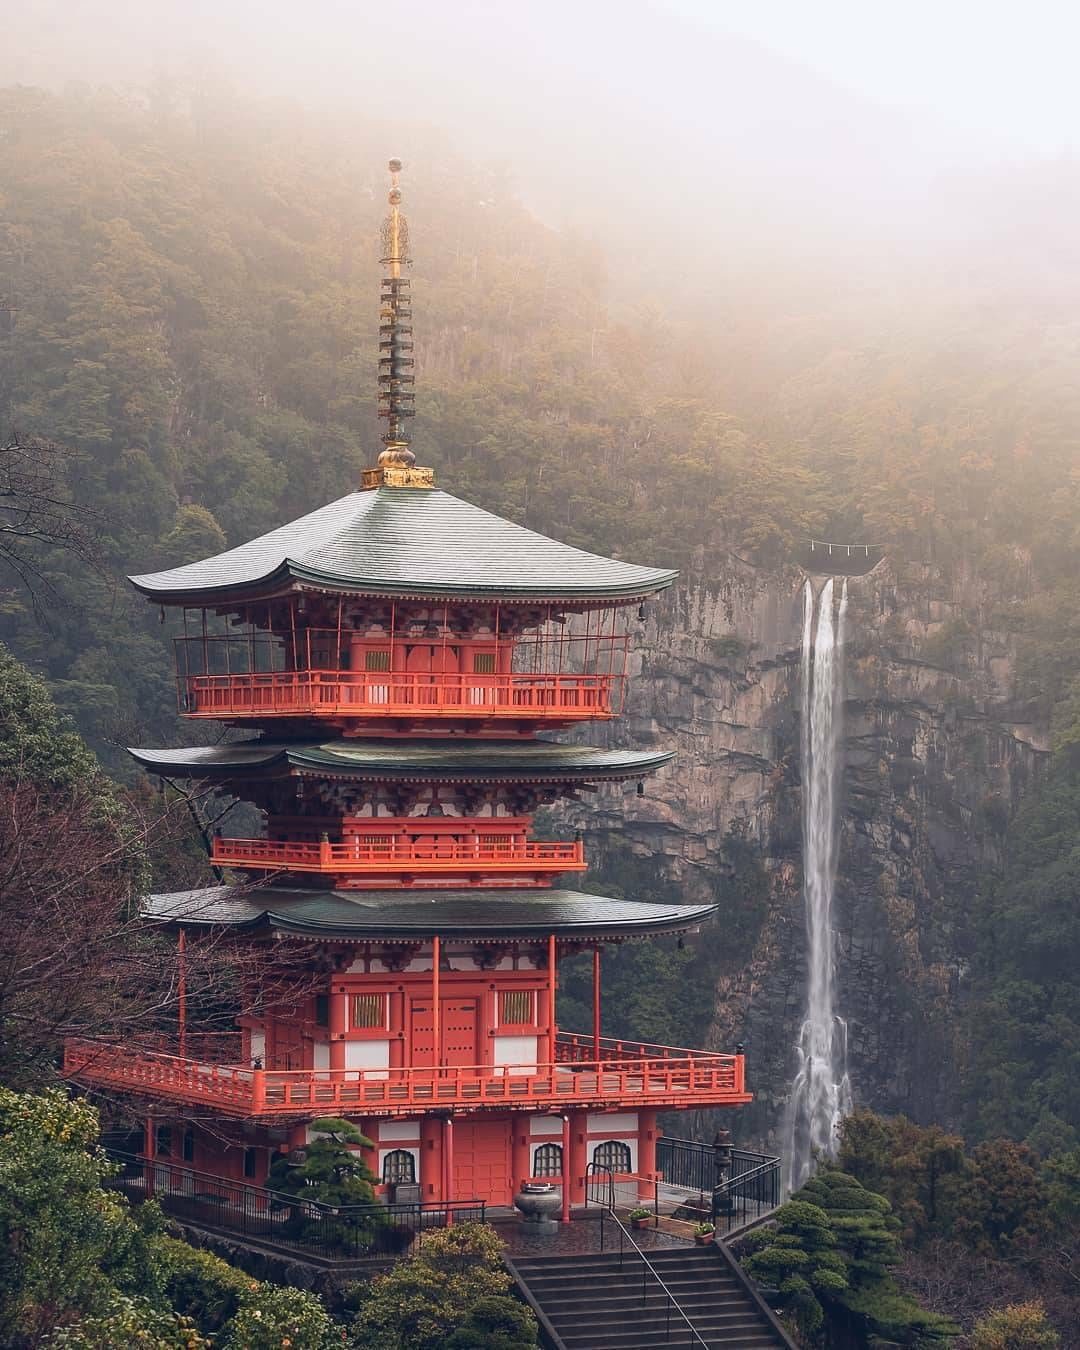 Japan Travel: With many travel restrictions and lockdowns still in place around the world, we